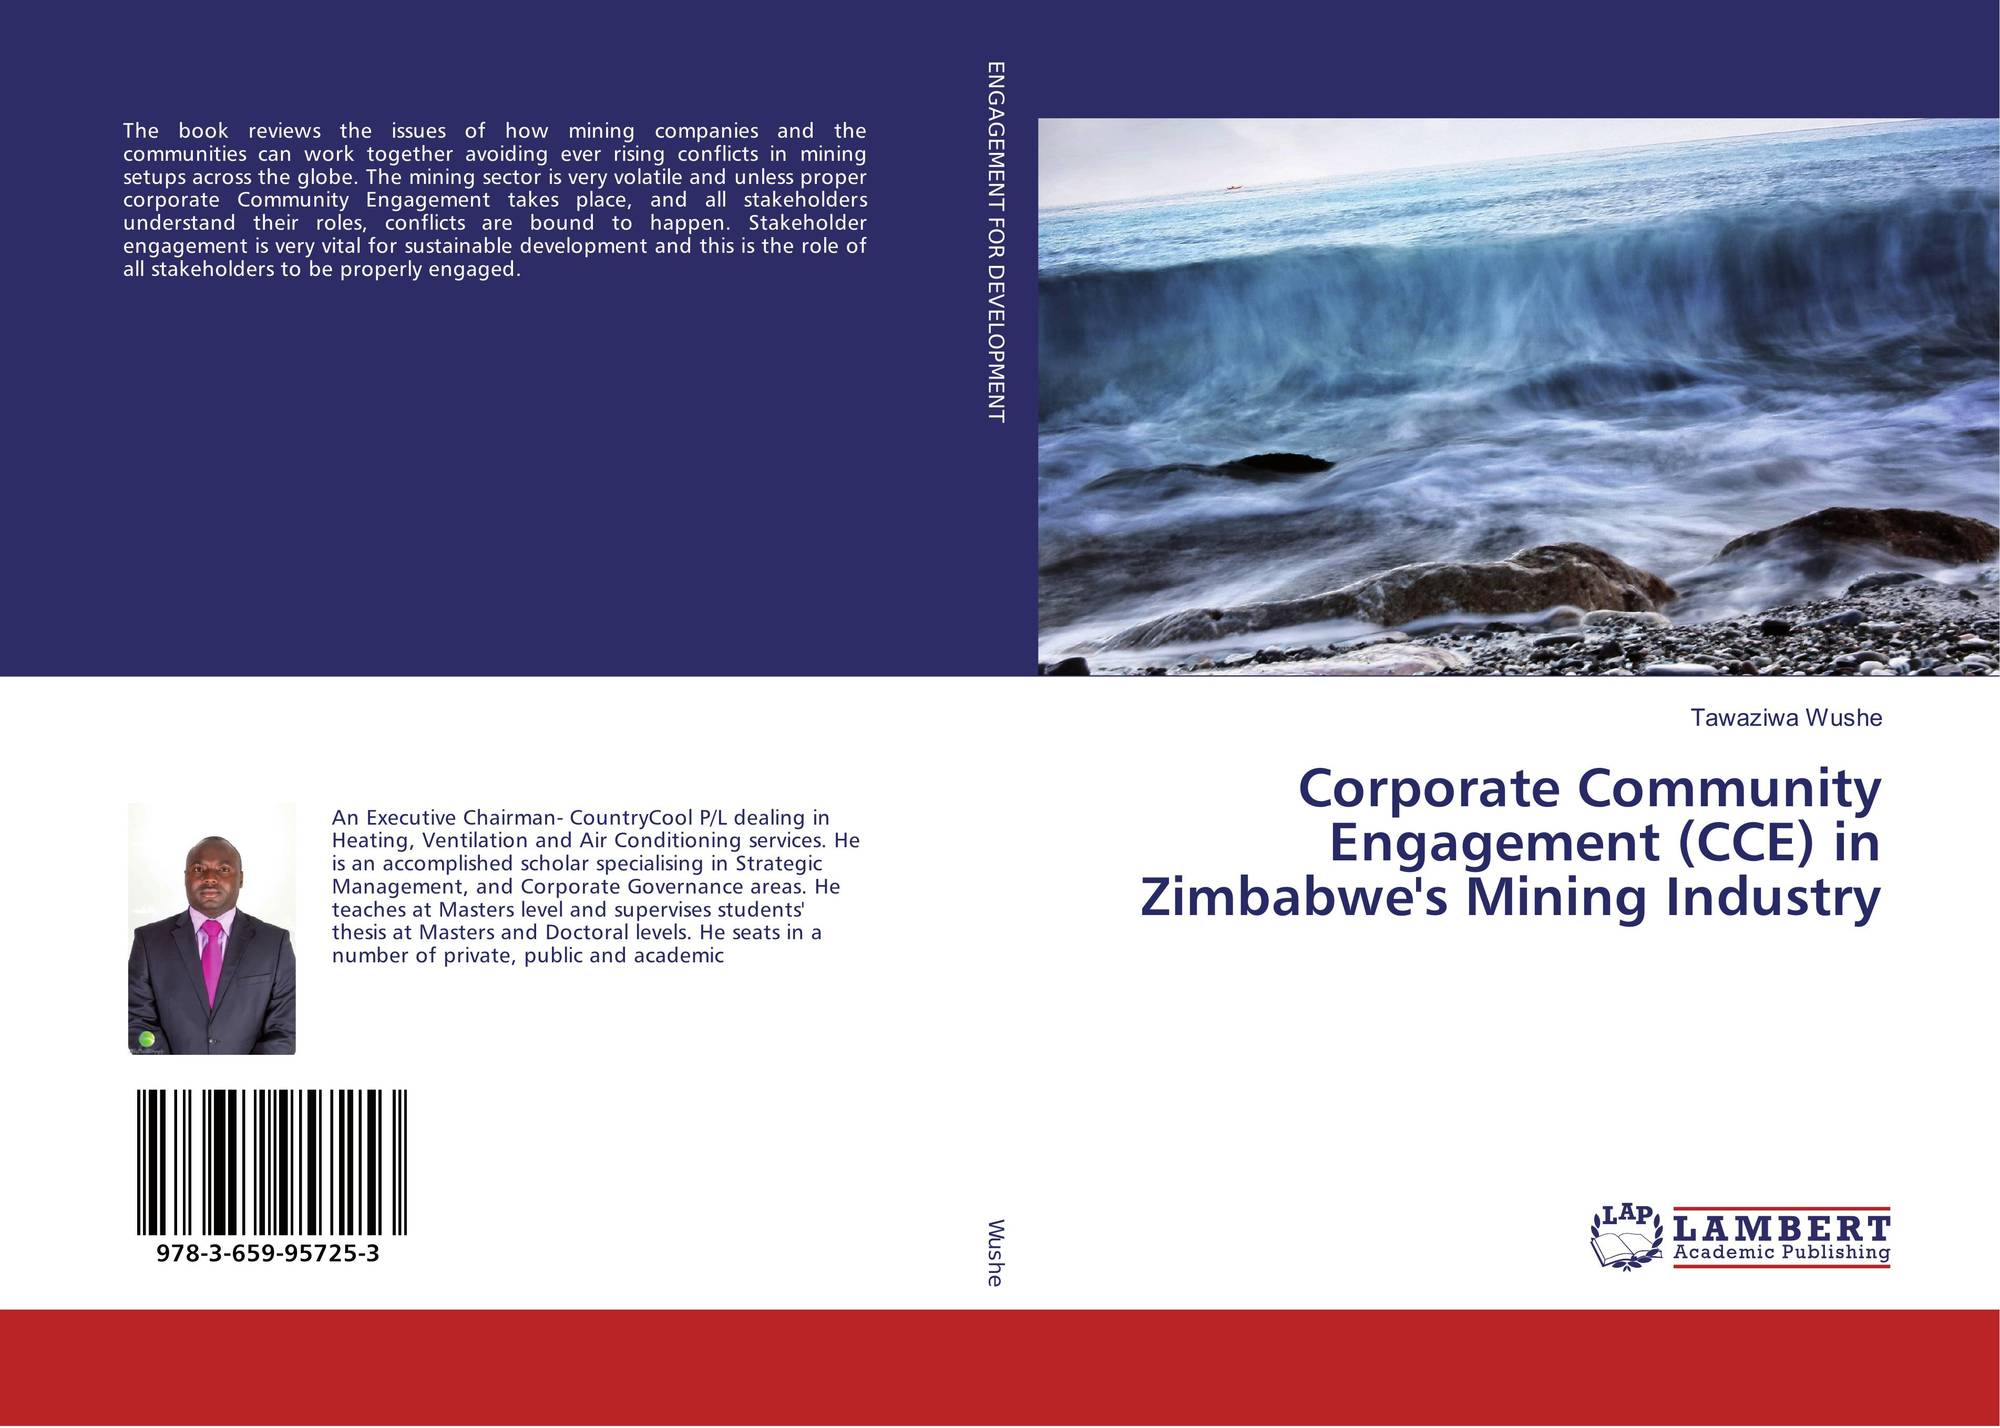 black economic empowerment and corporate governance in zimbabwe essay The broad‐based black economic empowerment act (2003), the new south african companies act (2008) and the king codes of corporate governance principles in south africa are critiqued a distinction is made between government and business corporate social responsibility initiatives.